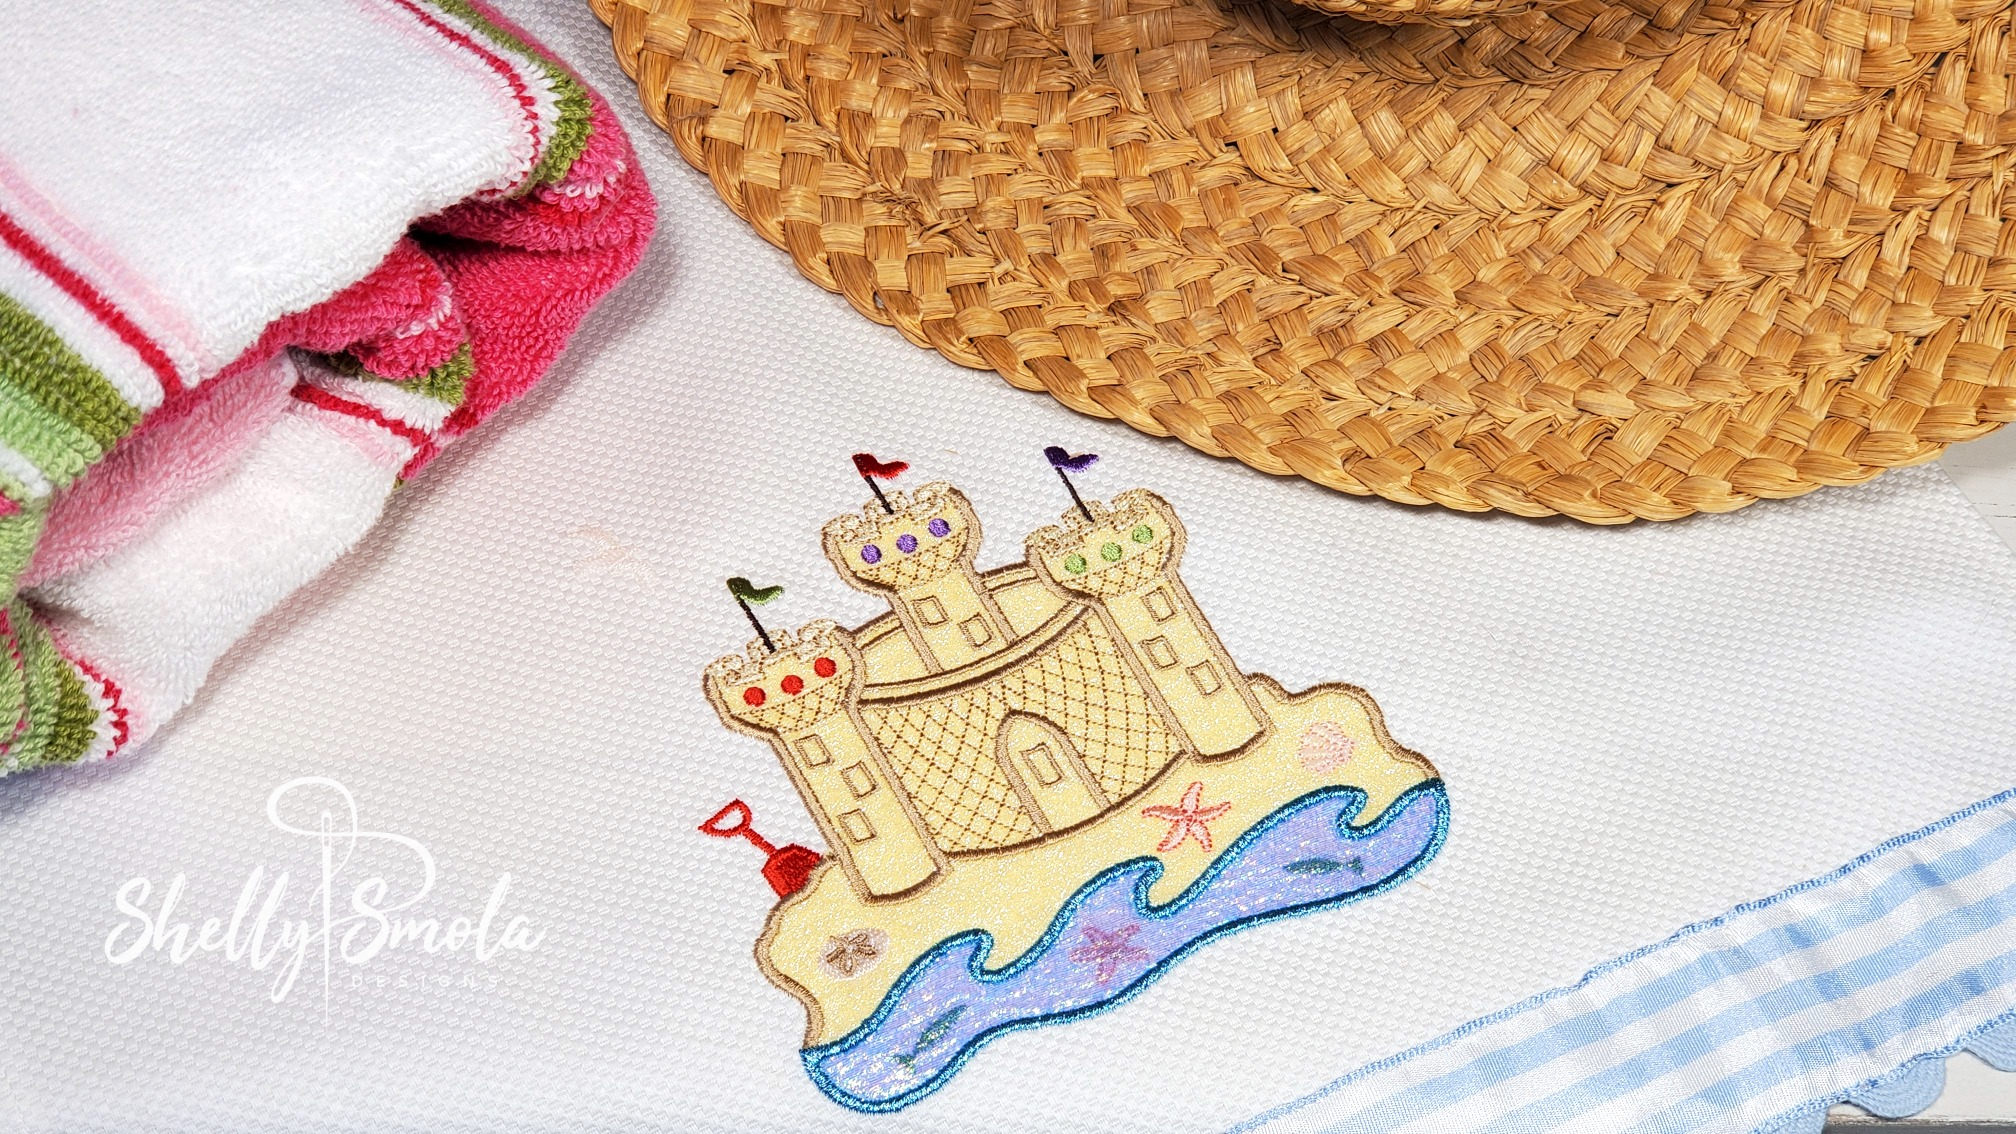 Embroidered Sandcastle